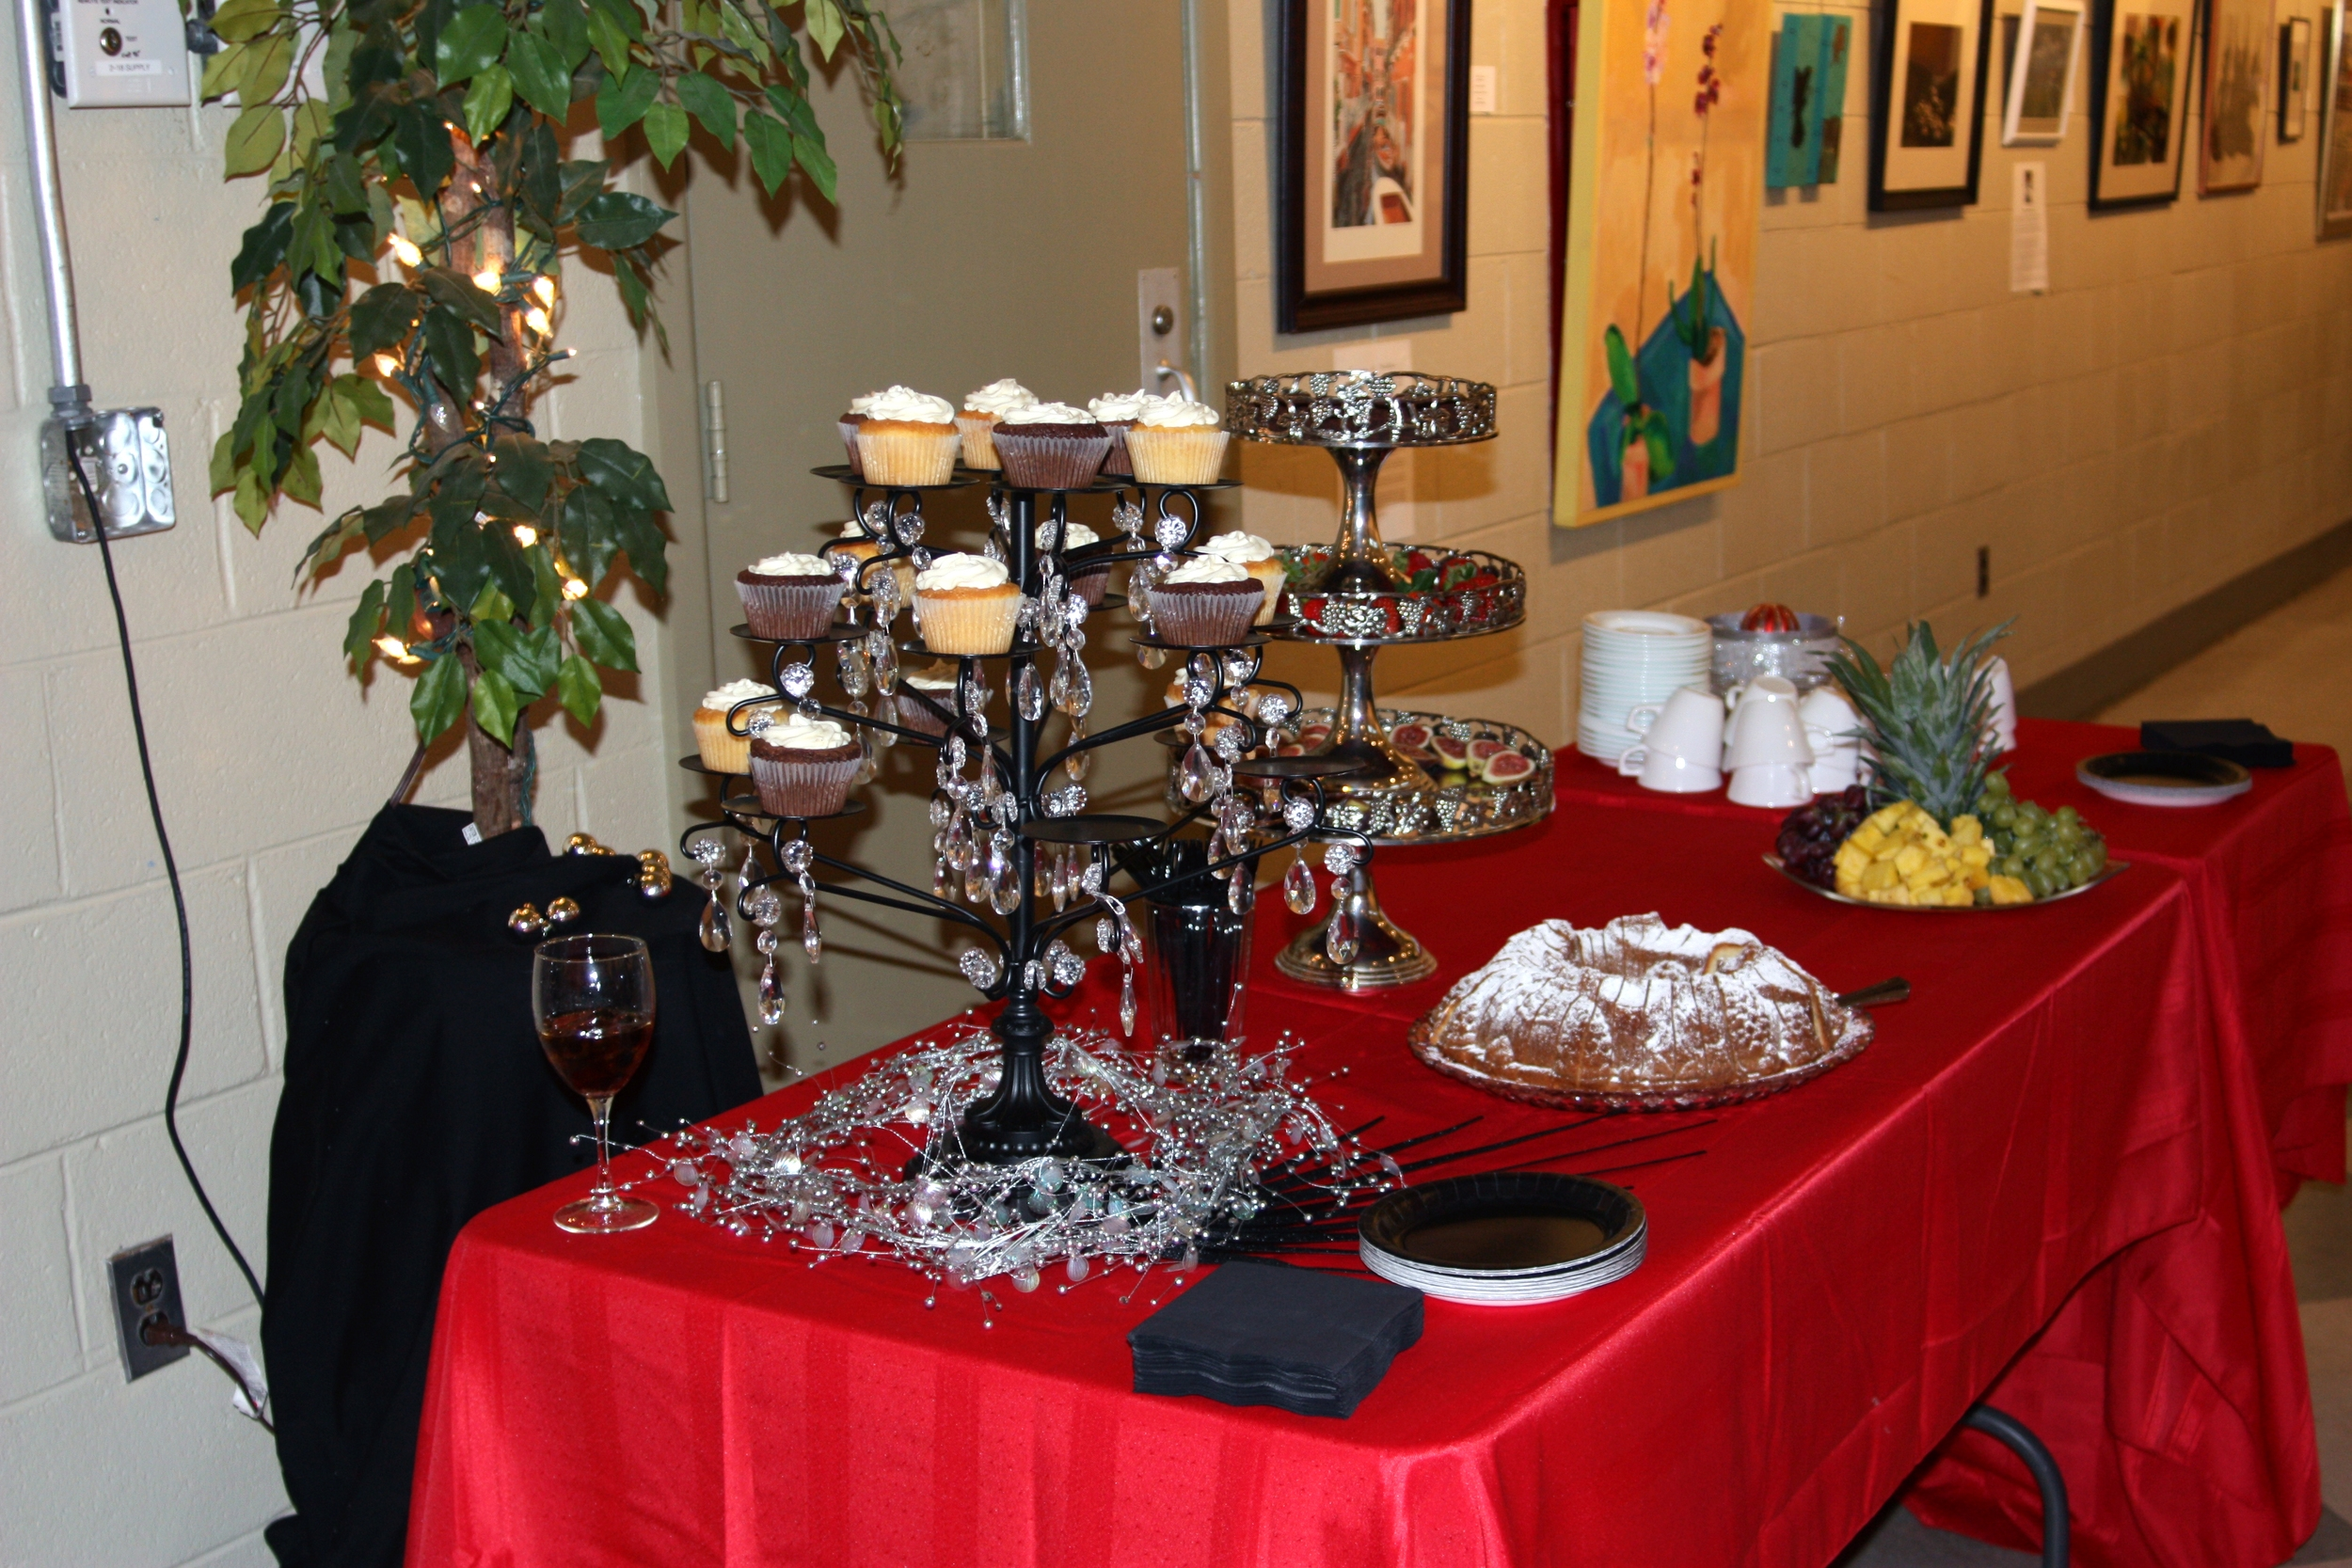 luck dessert table.JPG